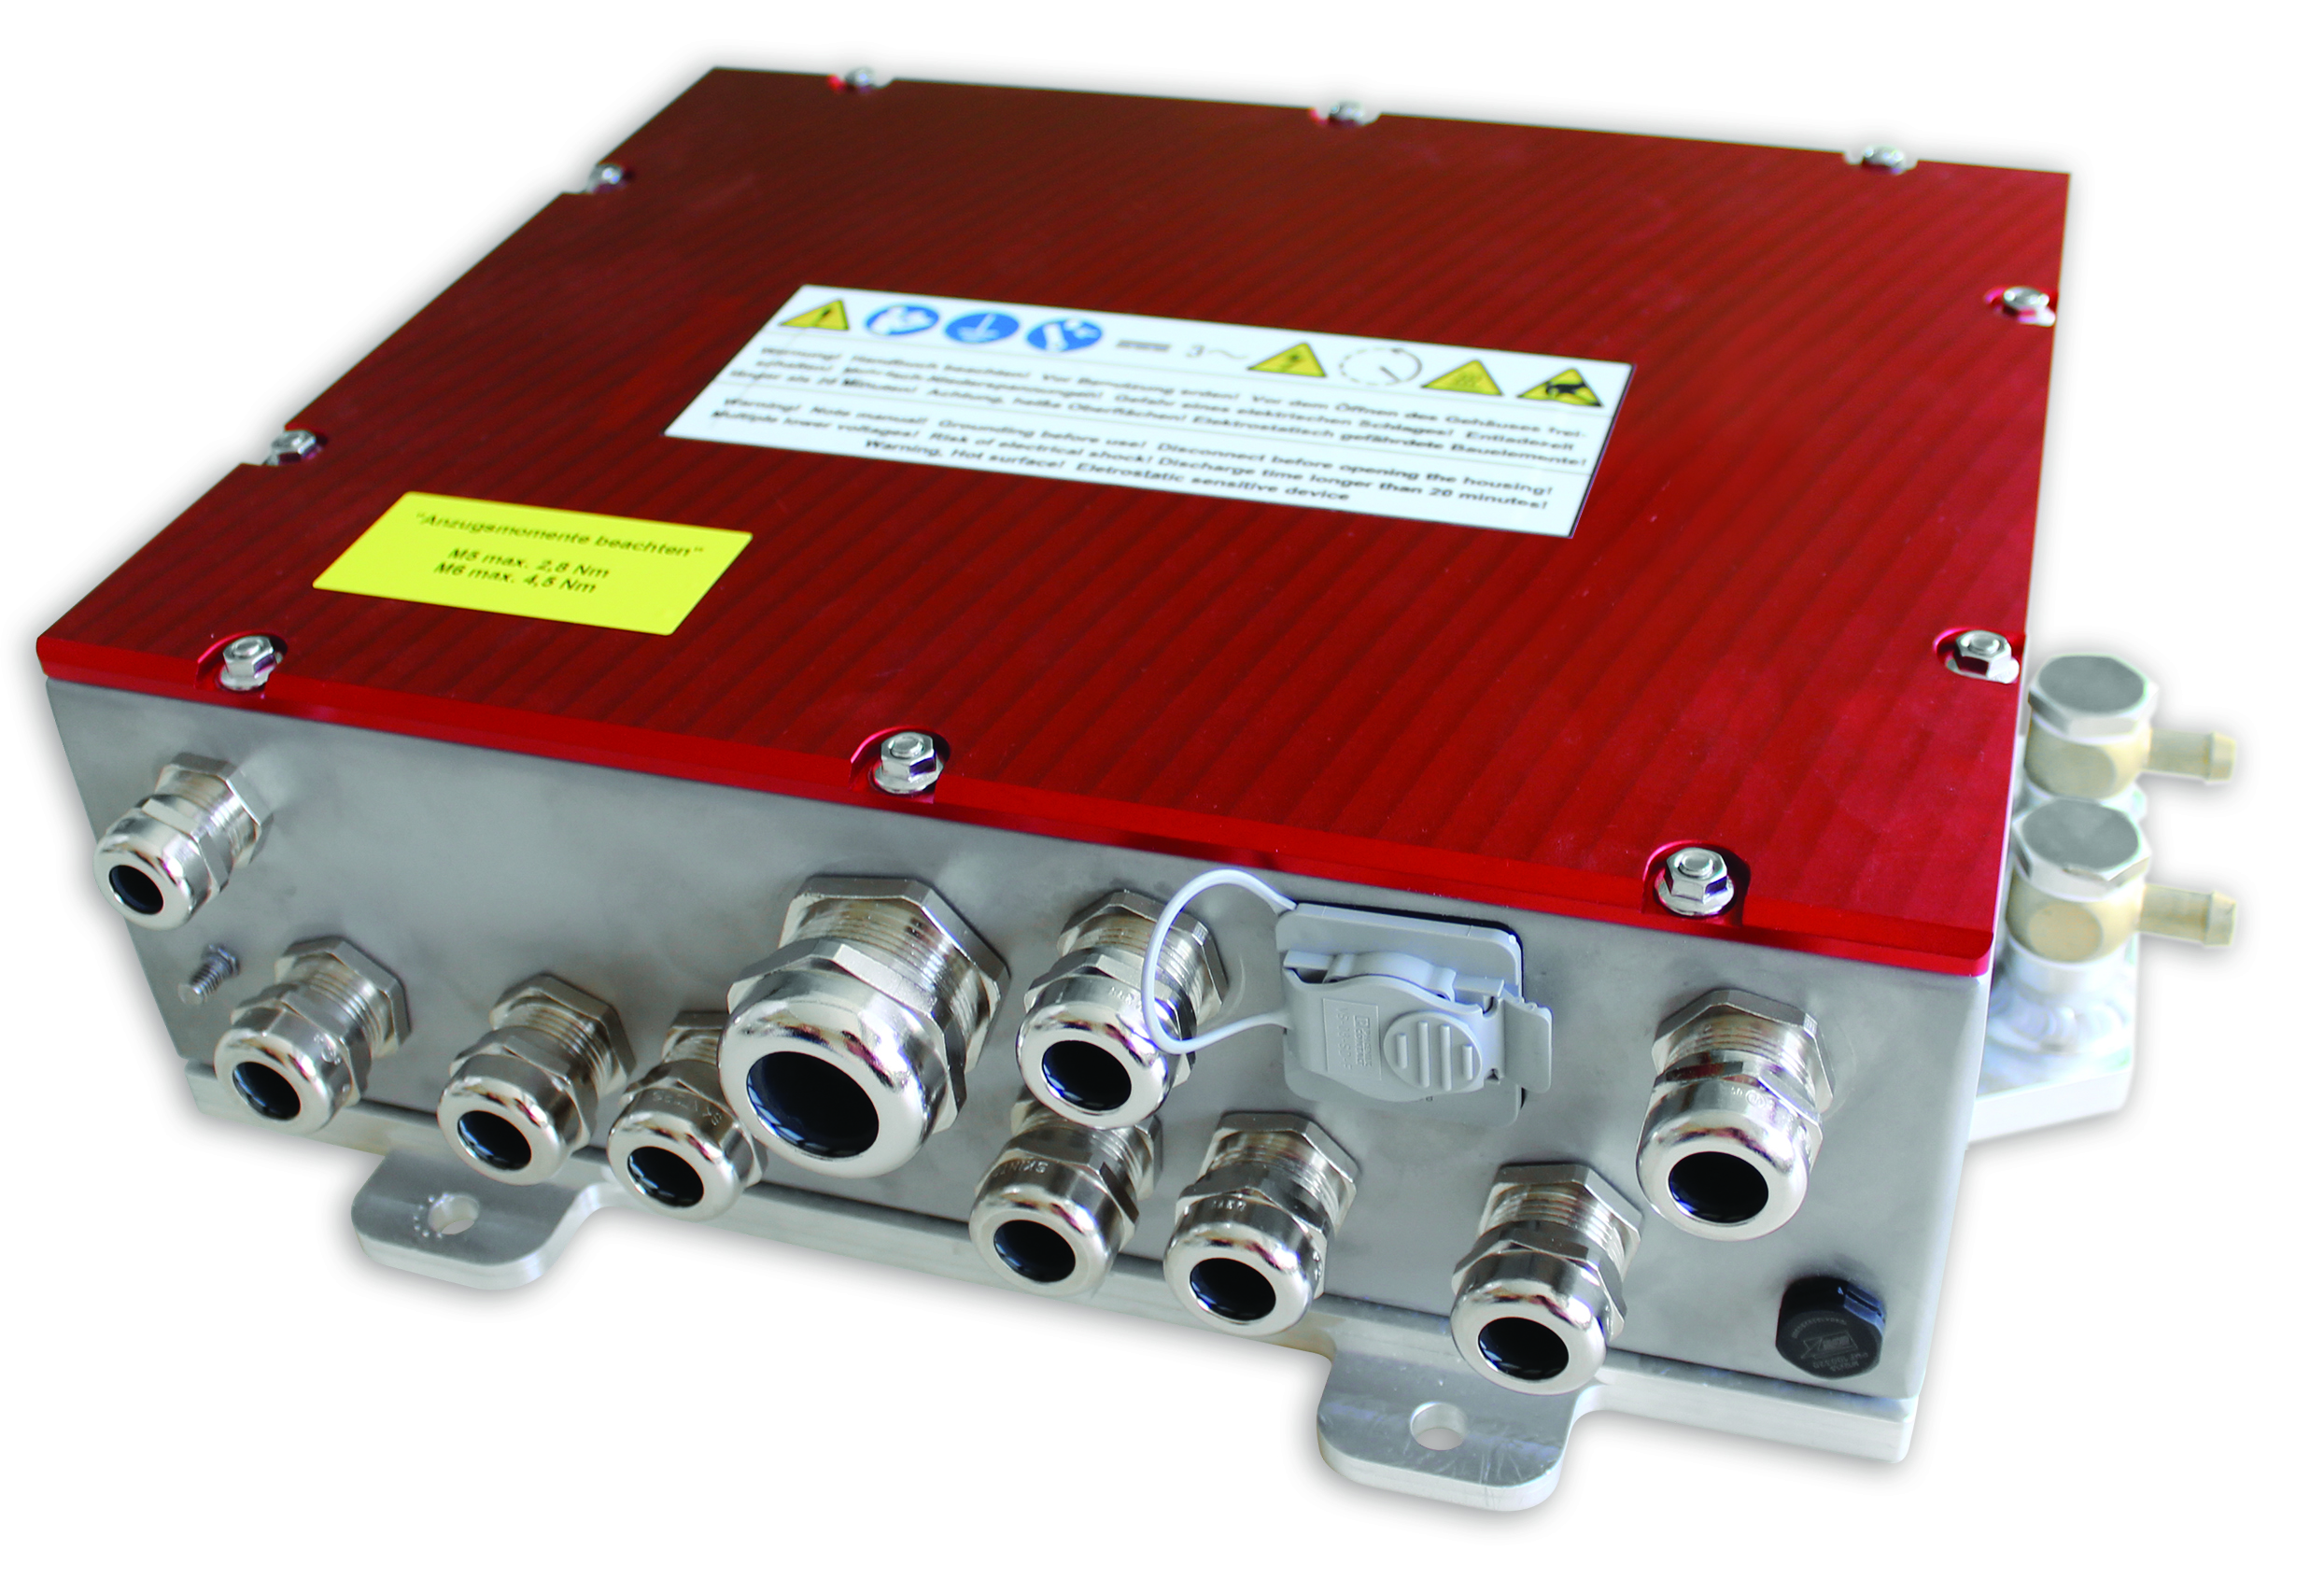 compact inverter for mobile applications